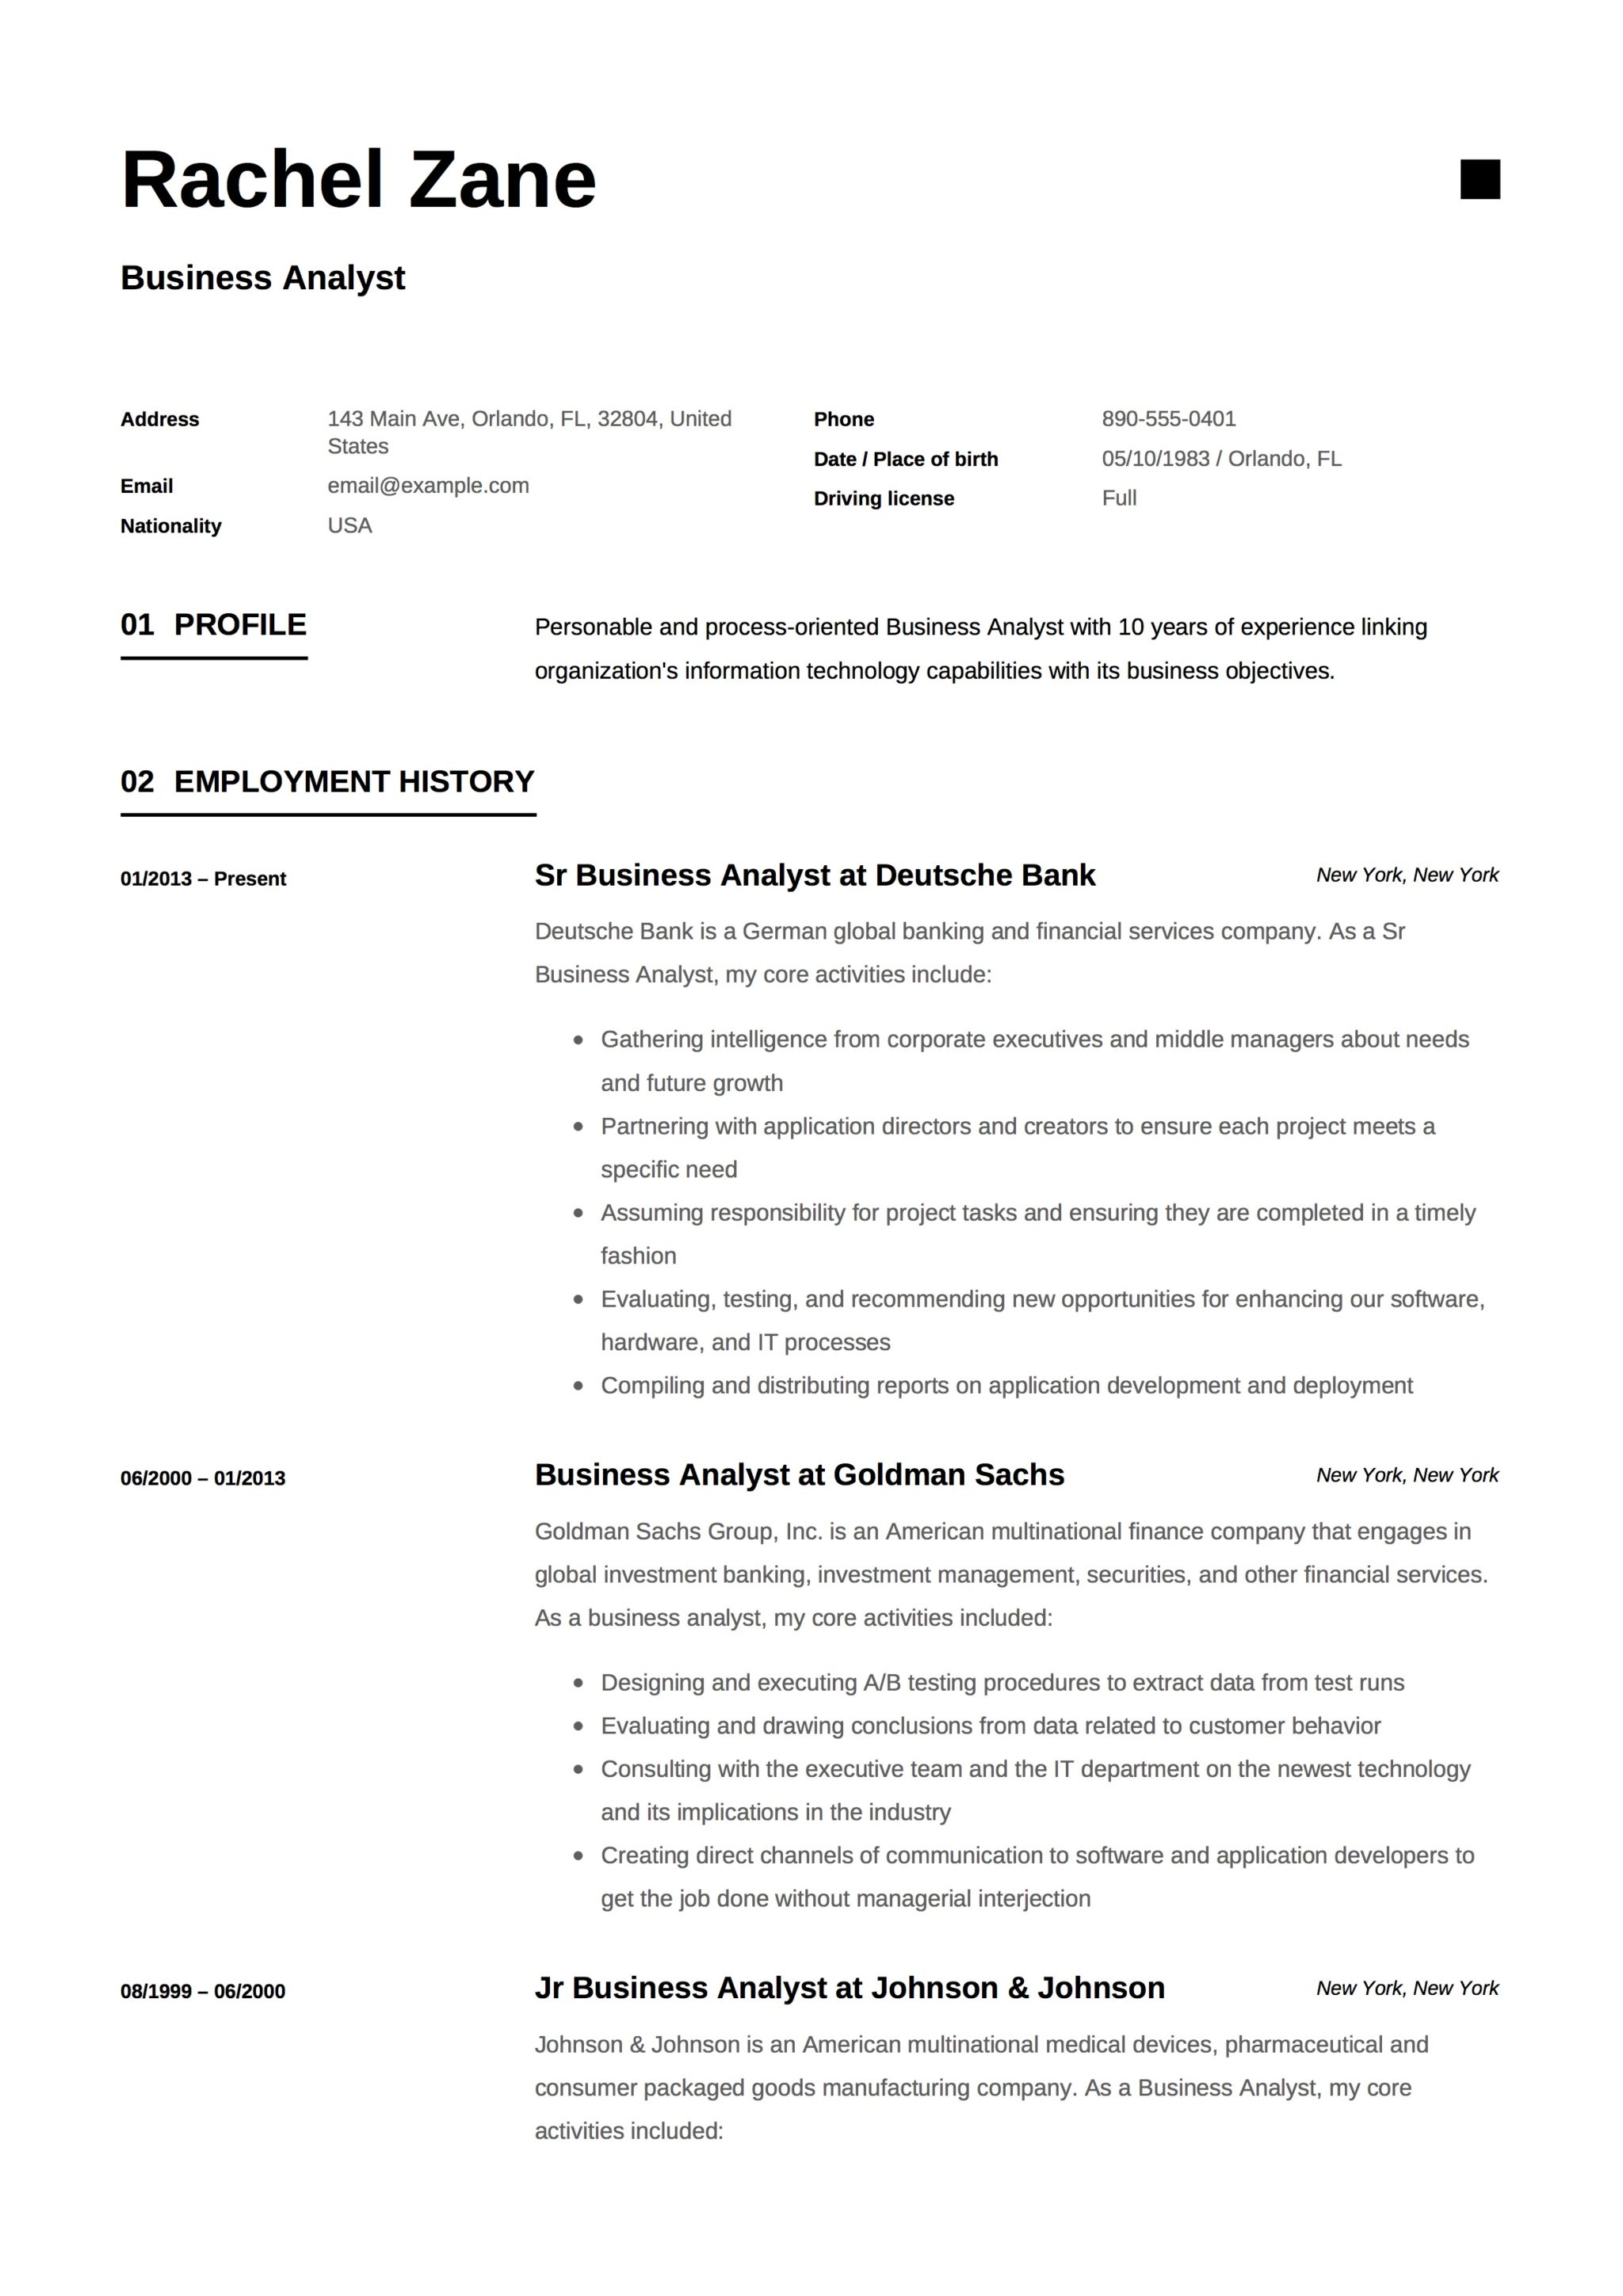 Resume Components Pdf - Resume Examples | Resume Template